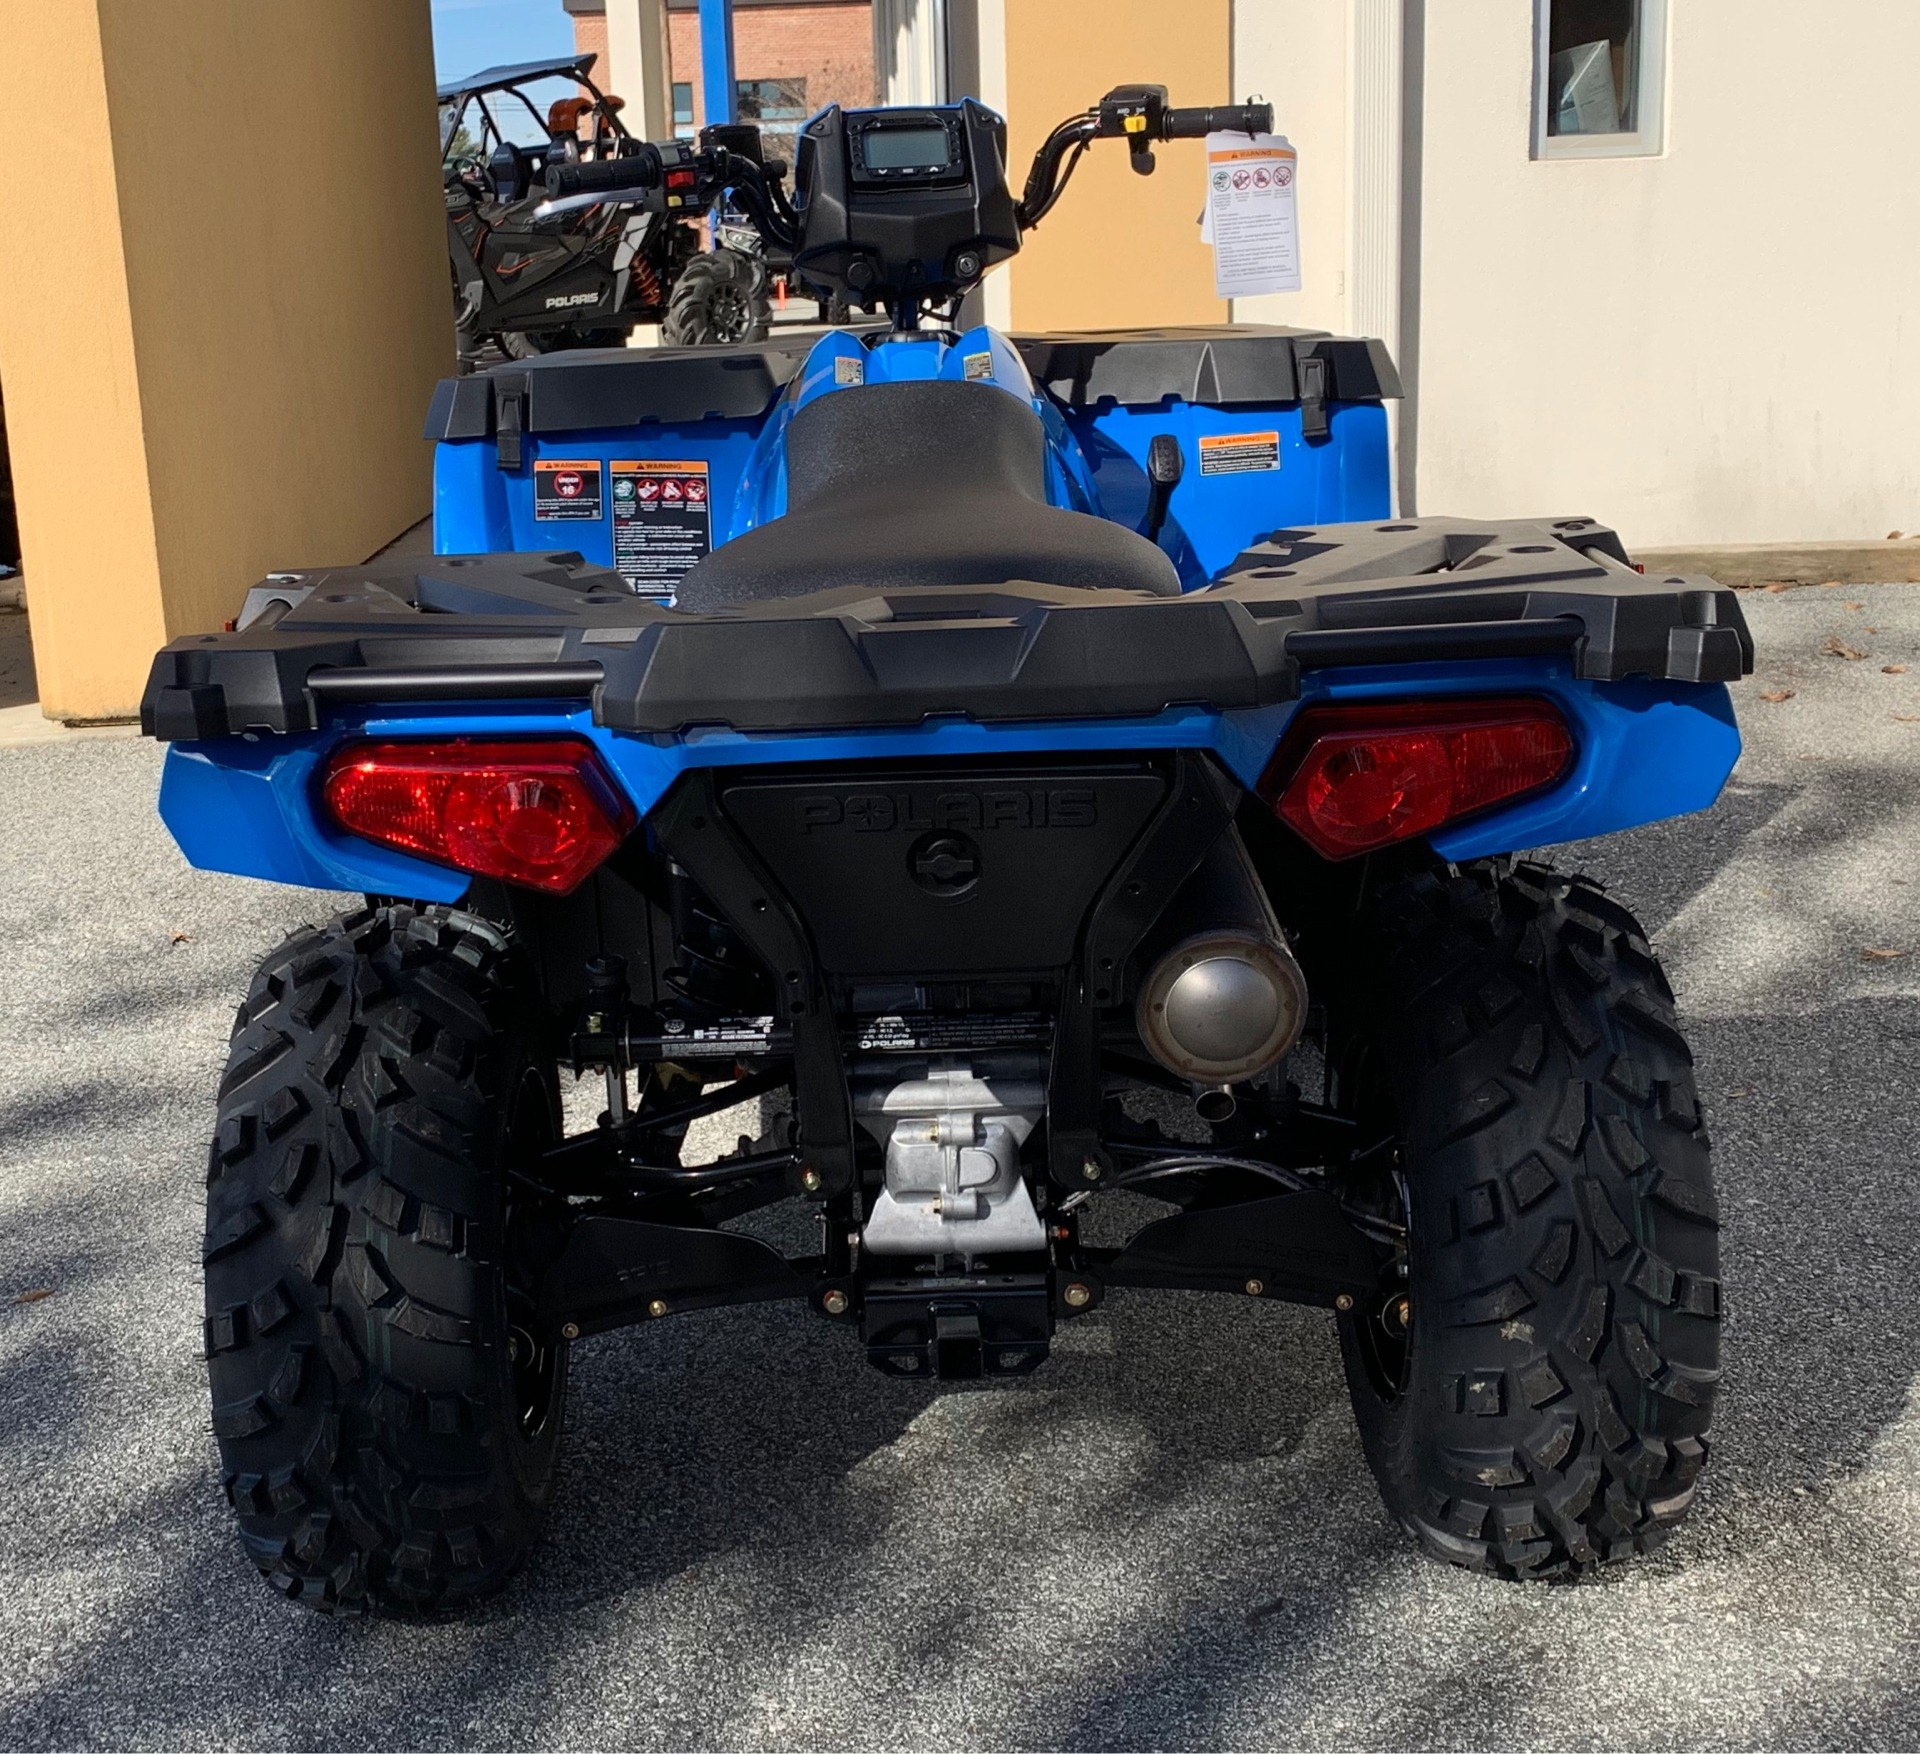 2019 Polaris Sportsman 570 EPS in High Point, North Carolina - Photo 7